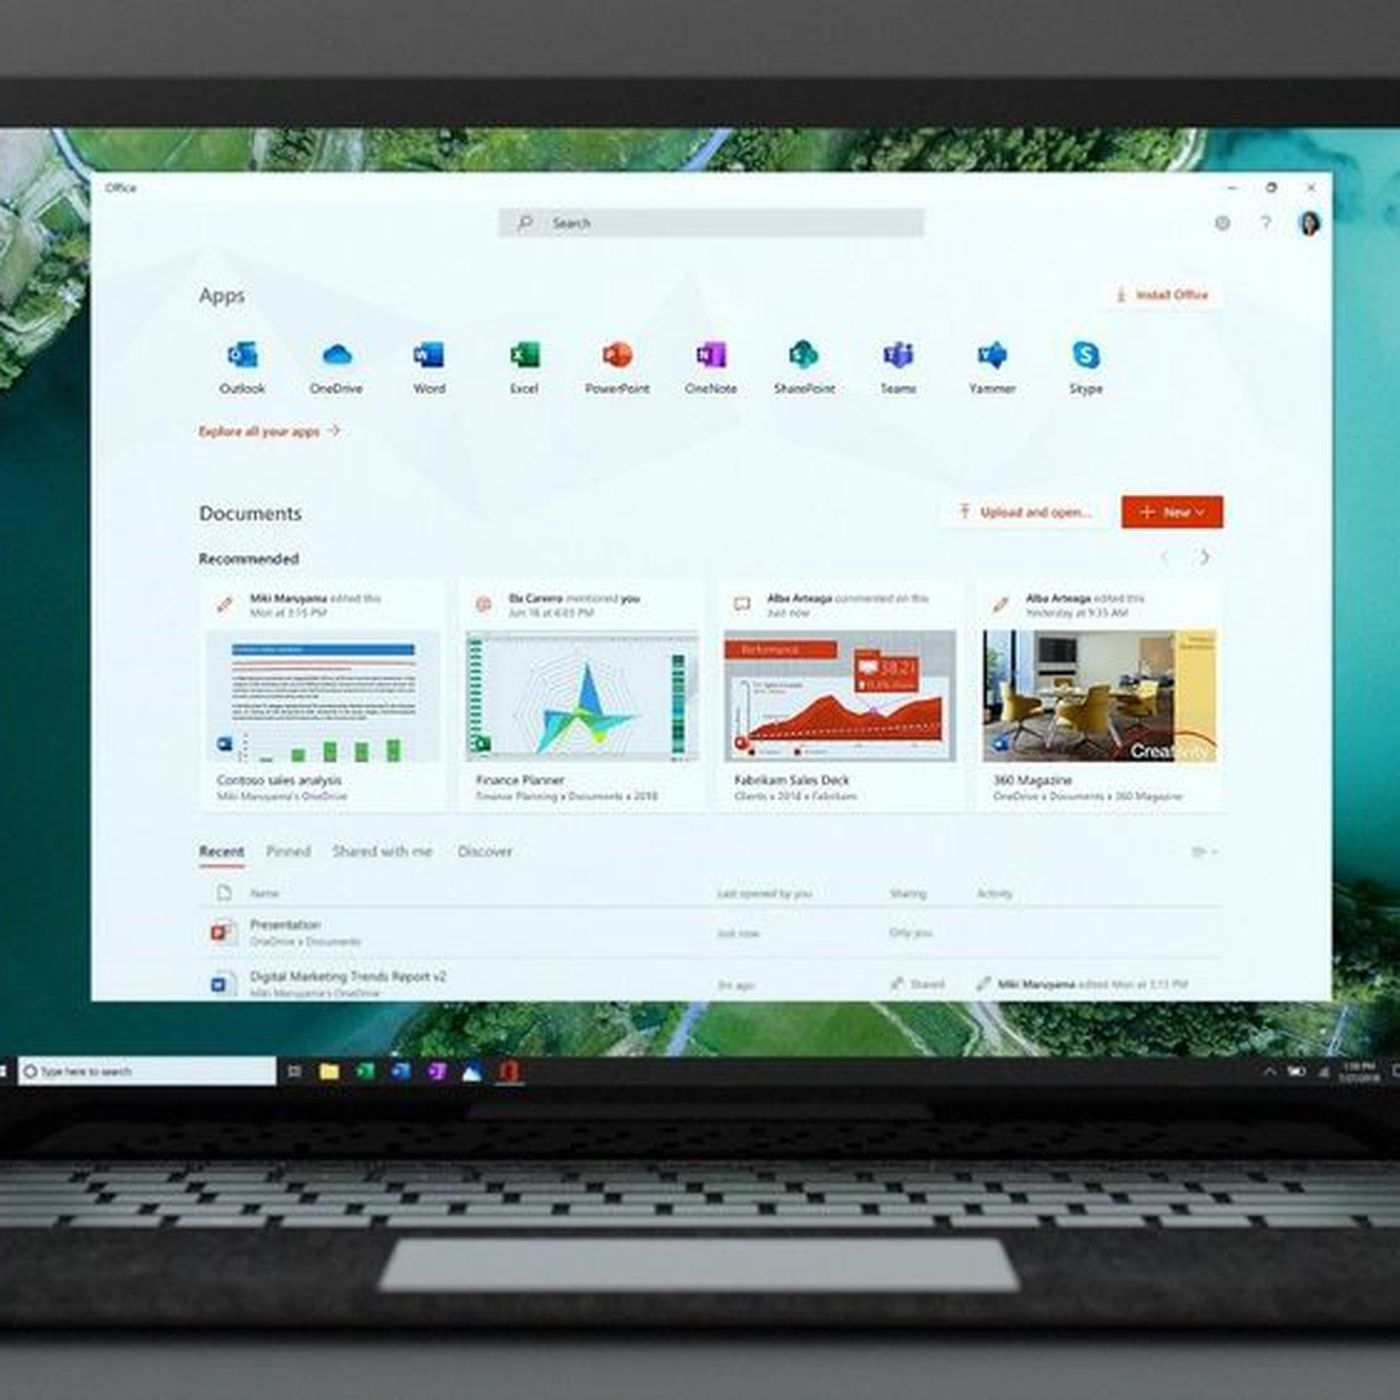 theverge.com - Tom Warren - Microsoft launches new Office app for Windows 10